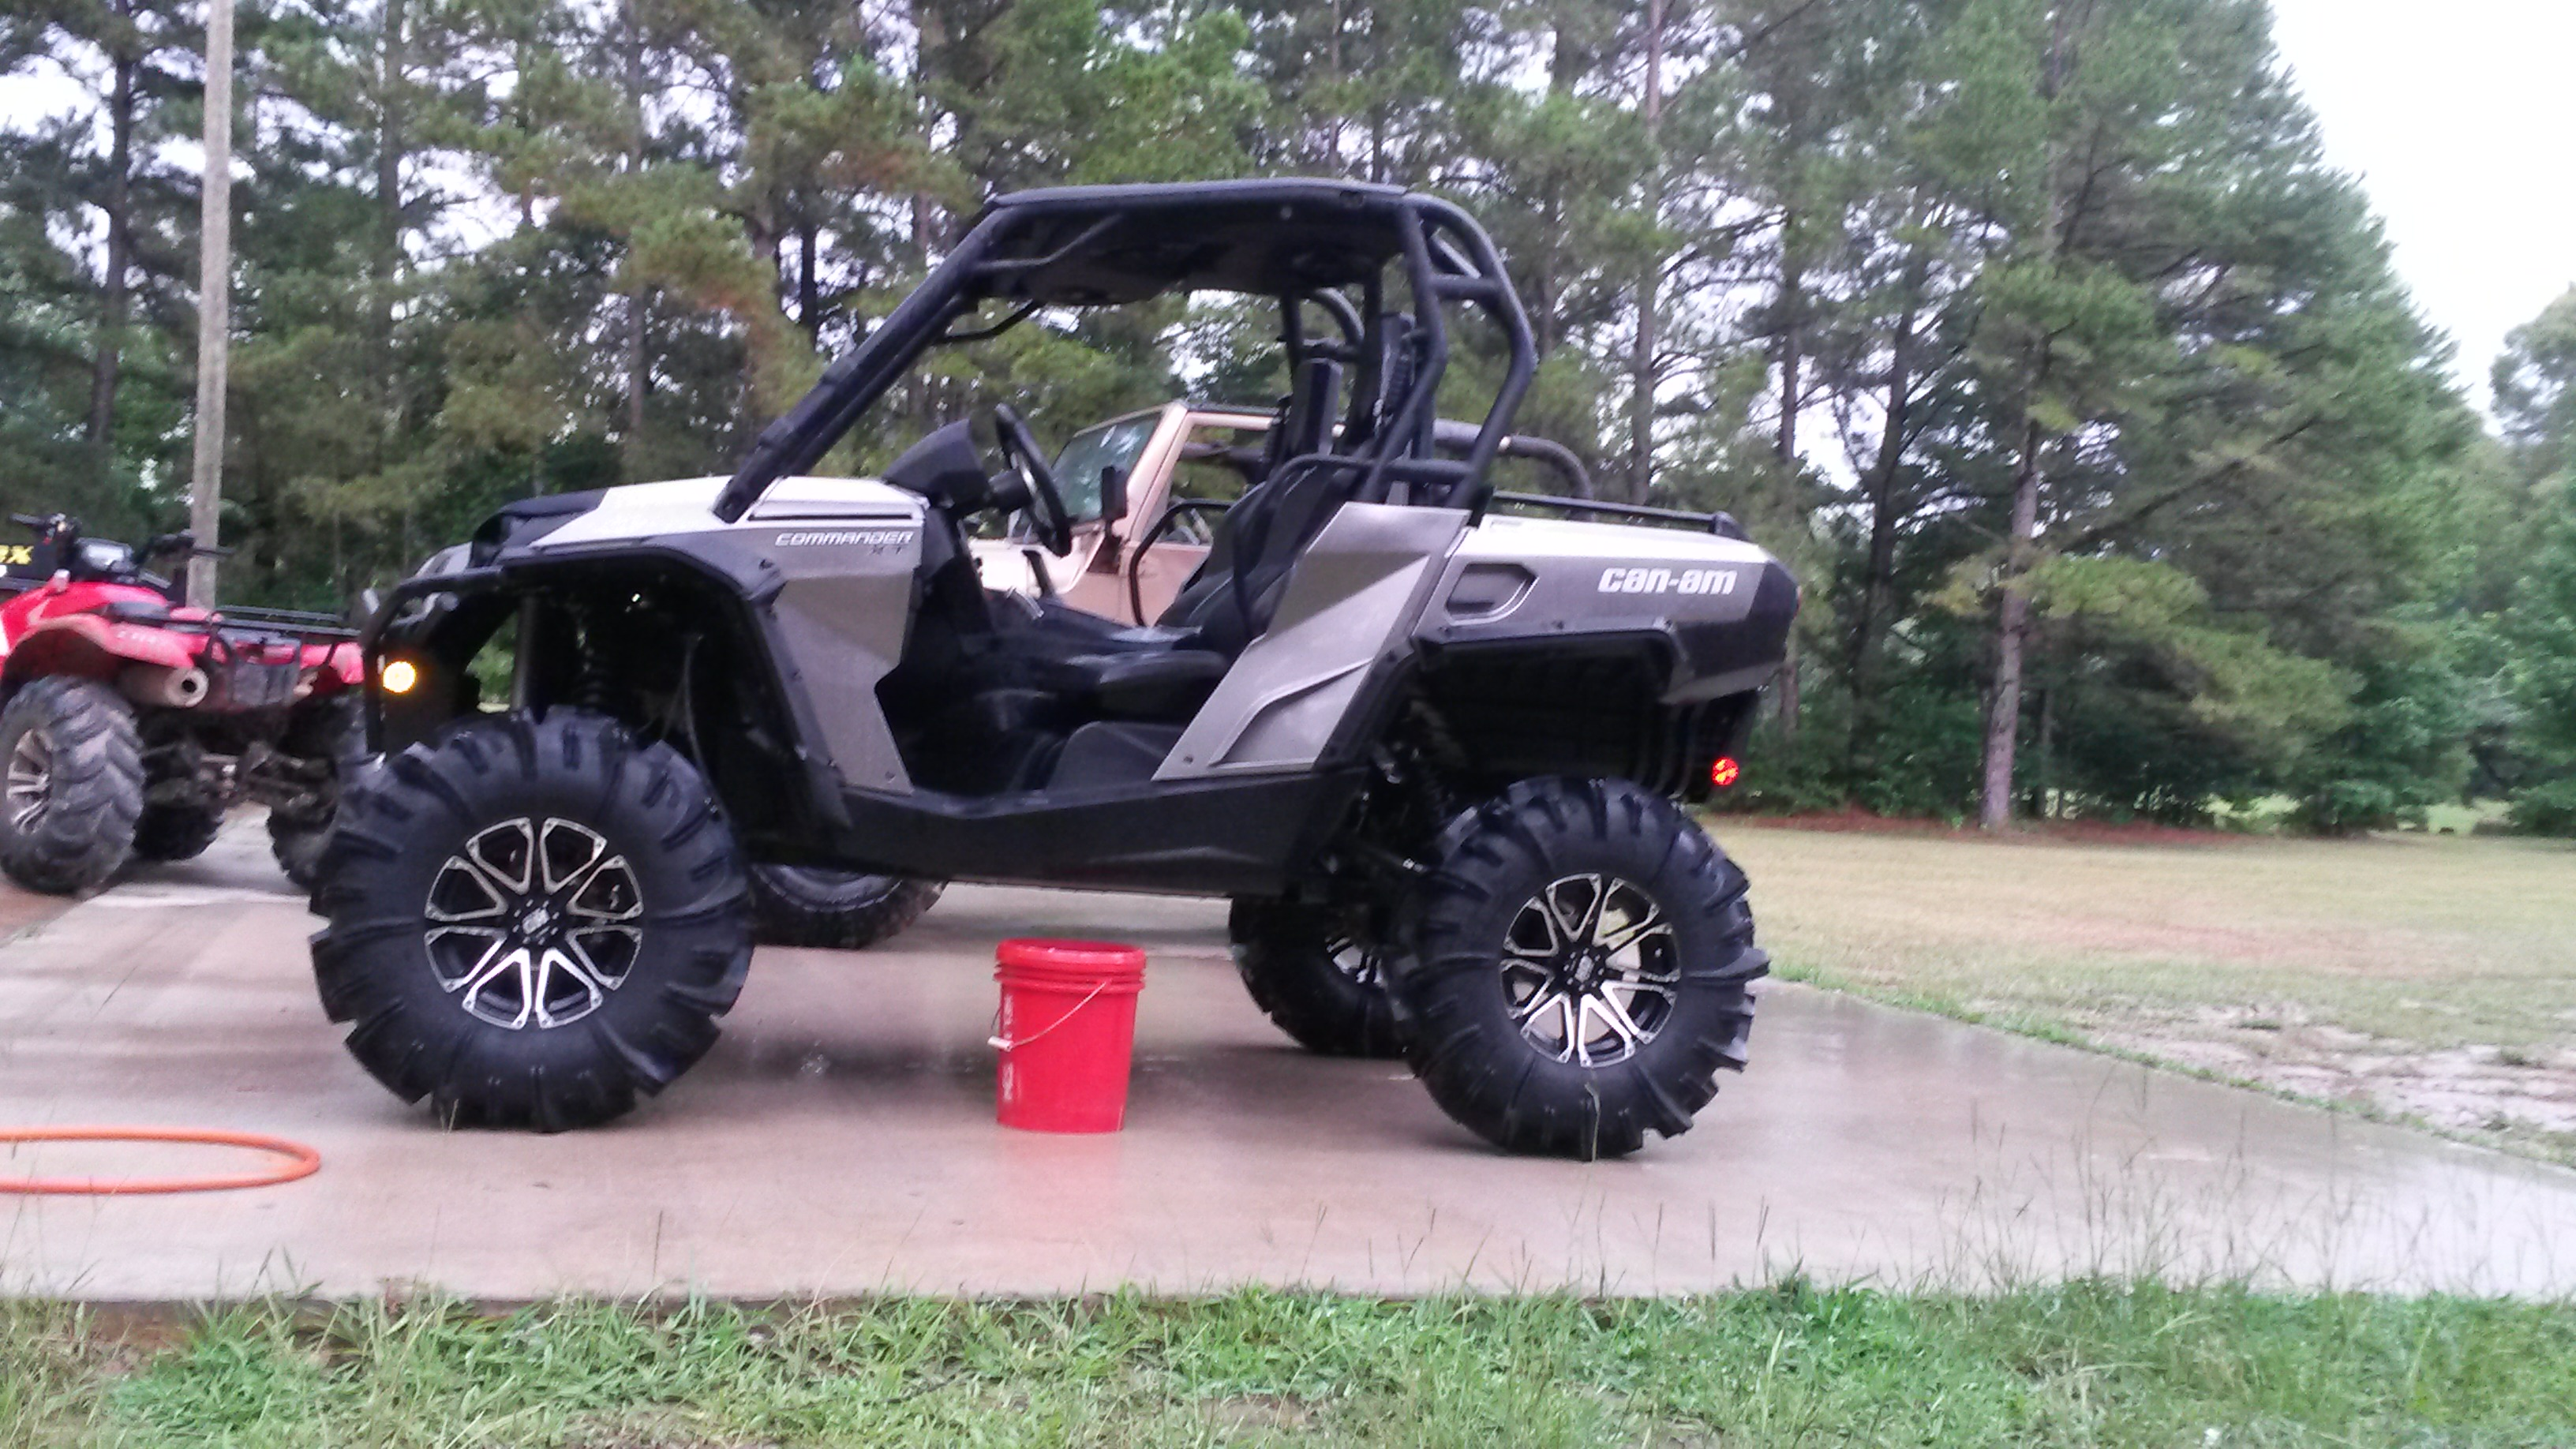 Can am commander 1000 limited 2016 for sale - 20140712_191442 Jpg